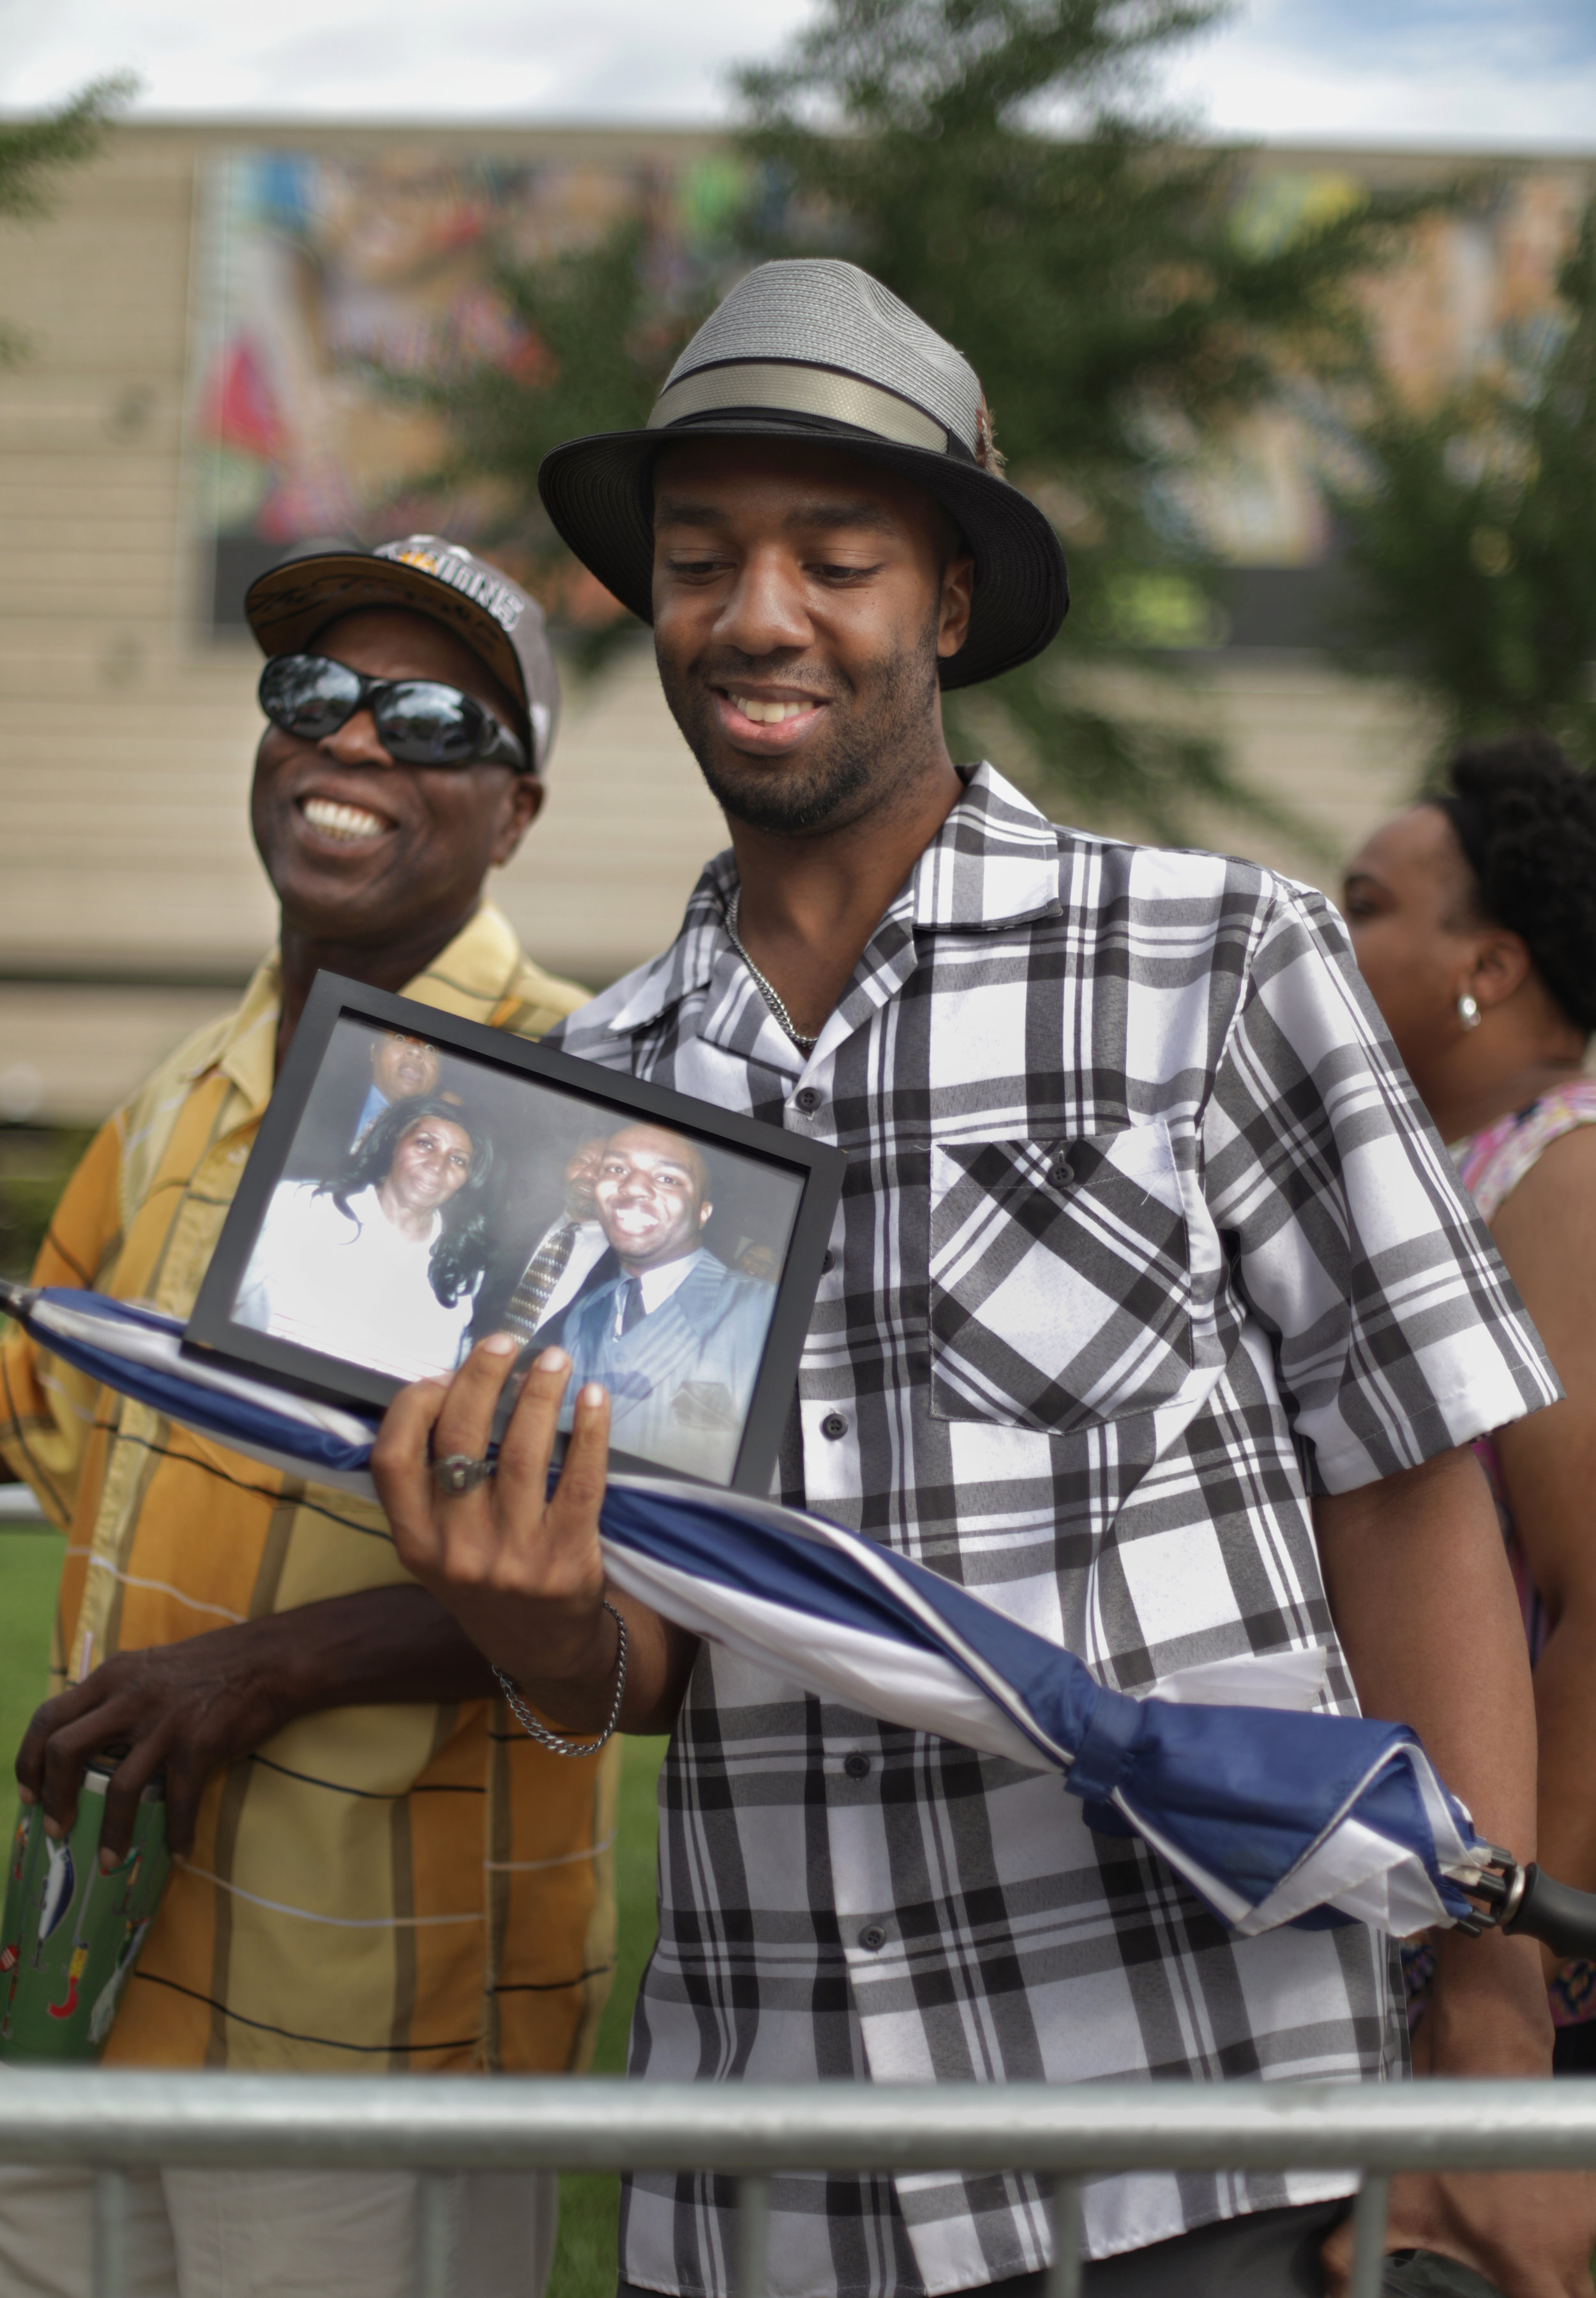 Jonathan Townsend, 33 of Pontiac, right and Gregory White, 65 of Shelby Township.